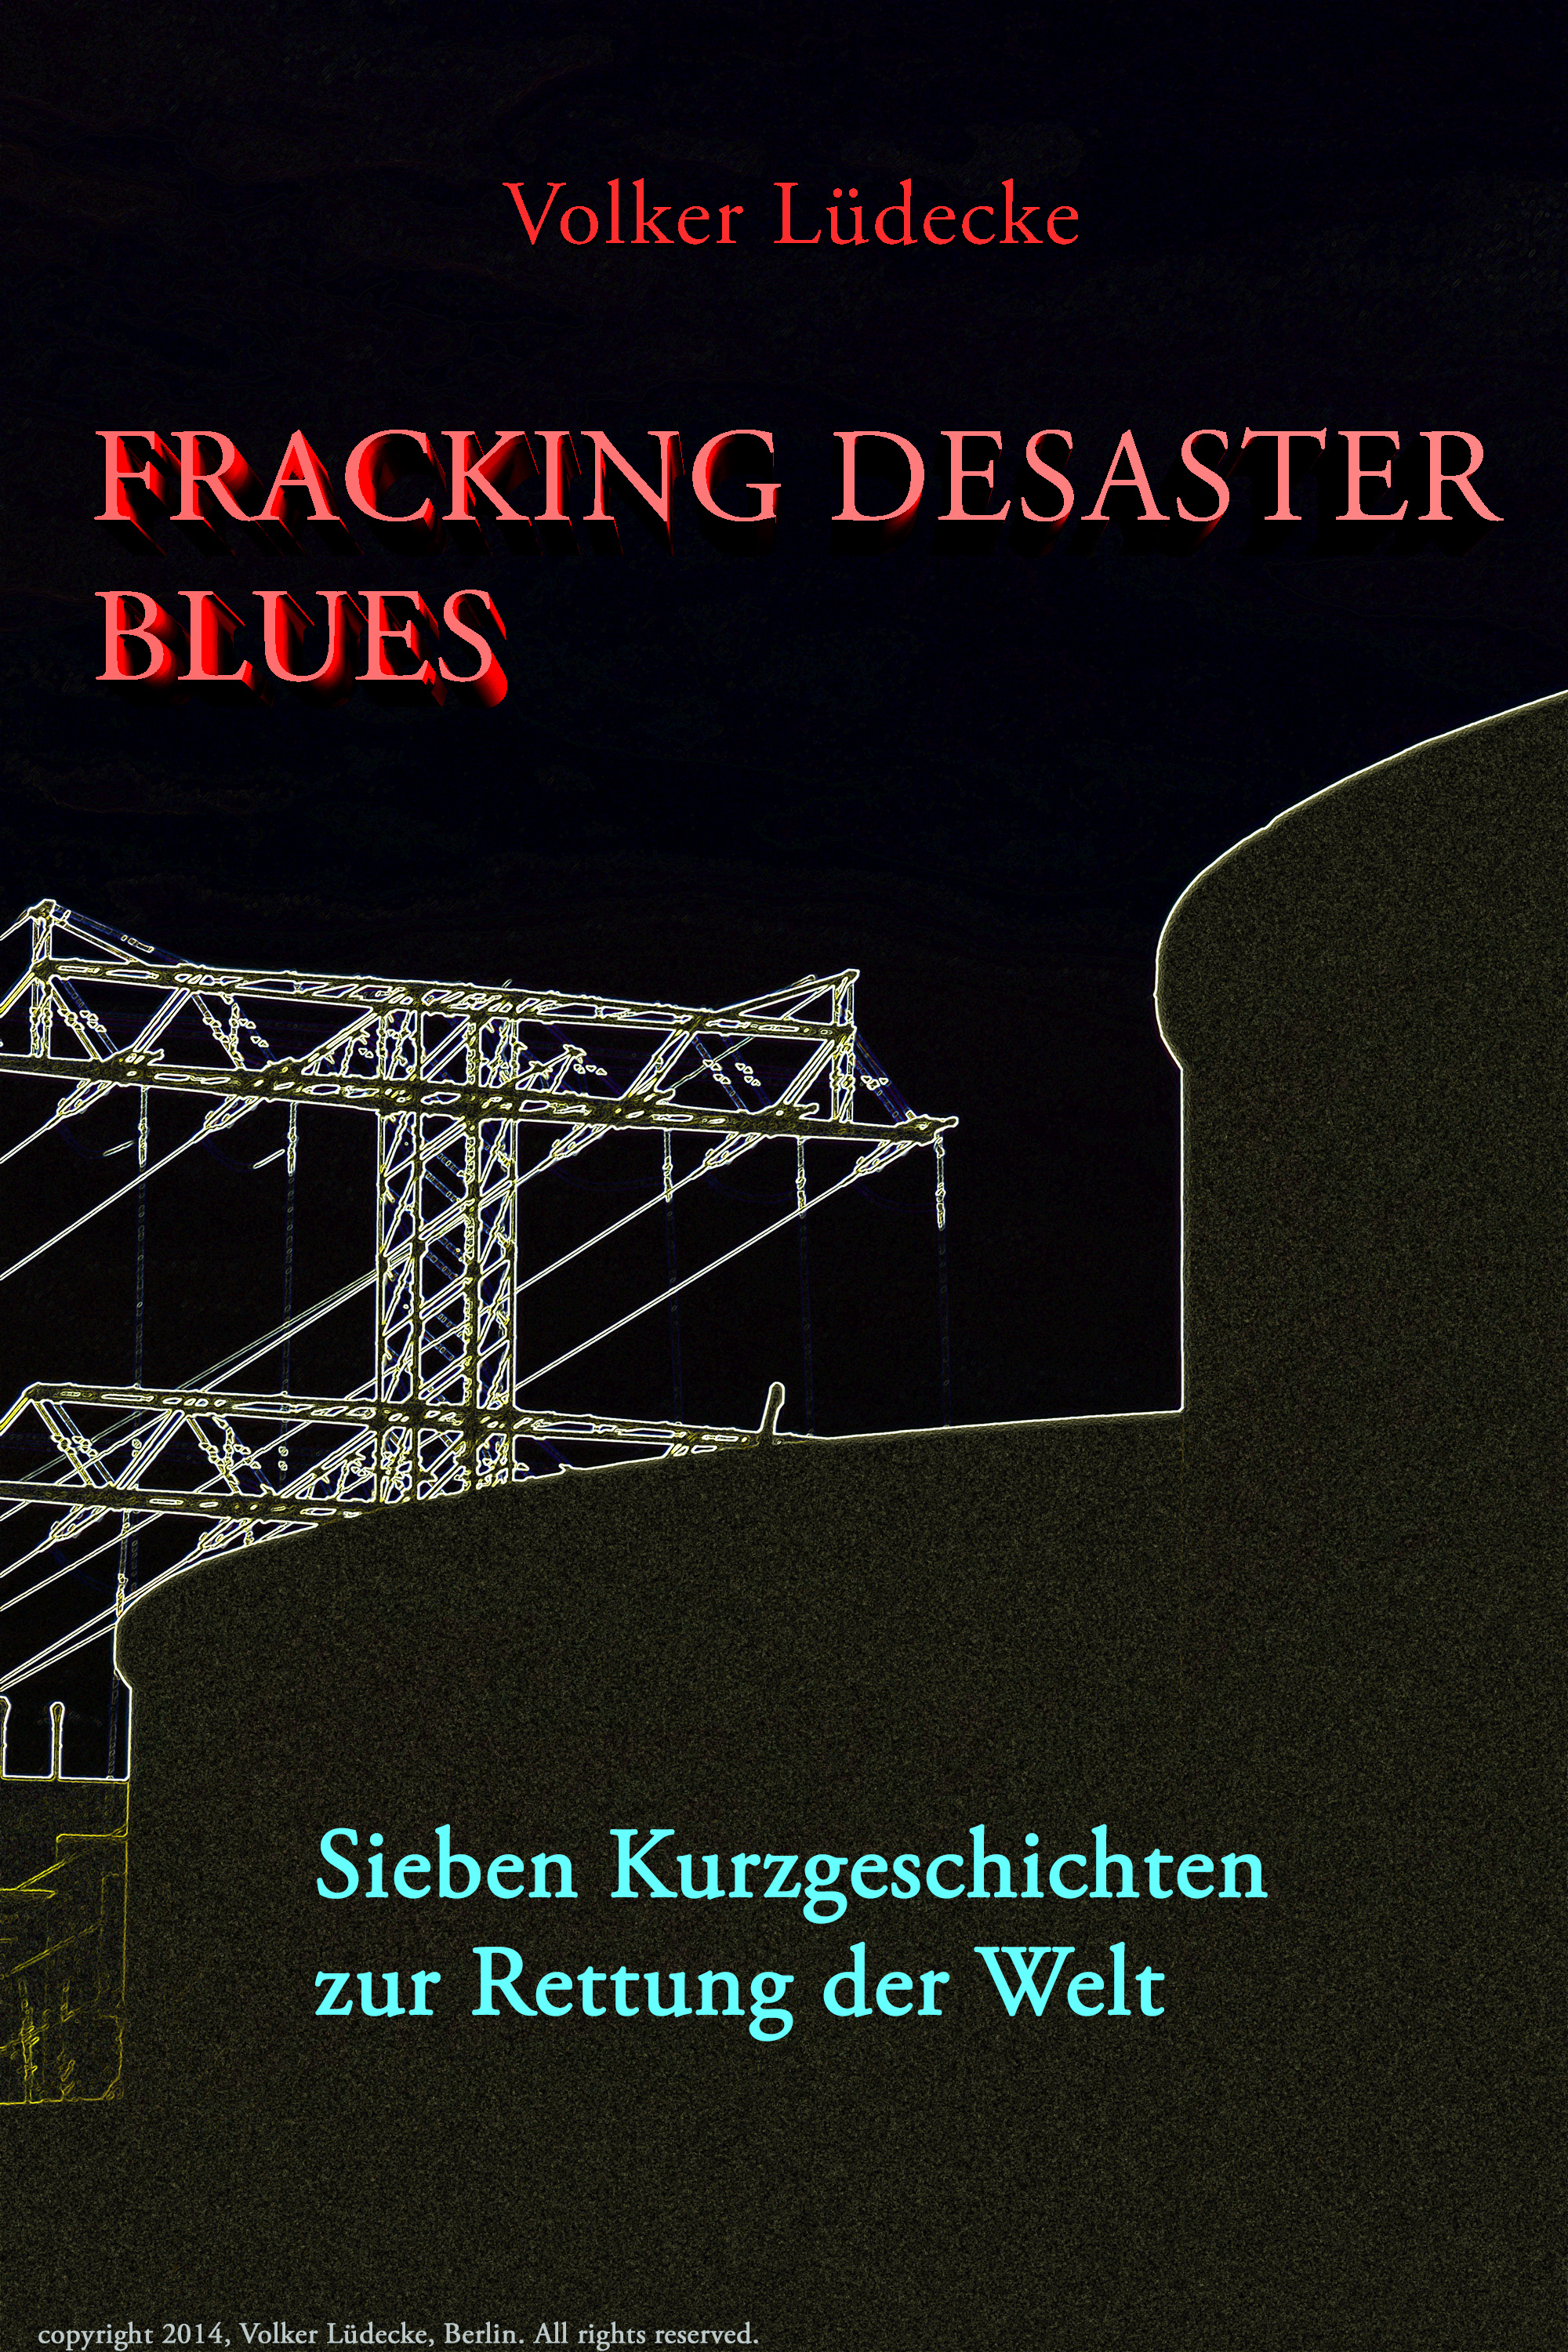 Fracking Desaster Blues